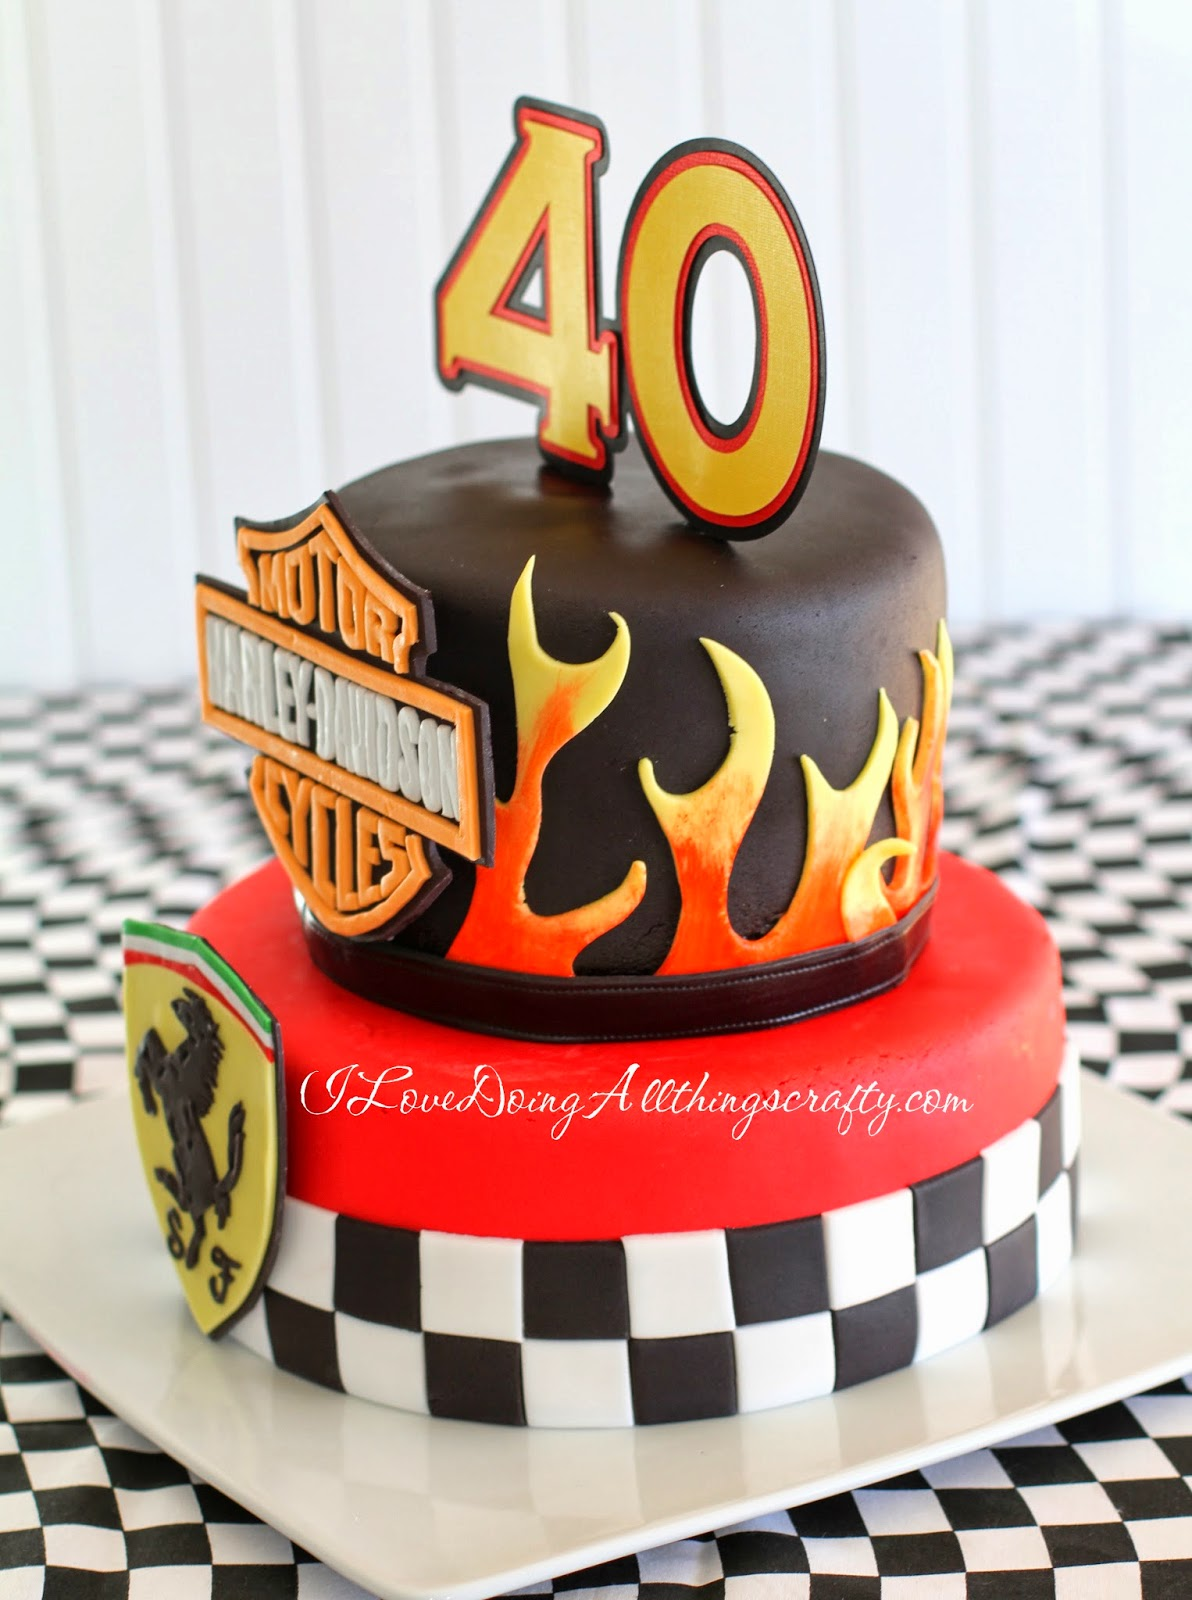 Harley Davidson / Ferrari 40th Birthday Cake | DIY Cakes